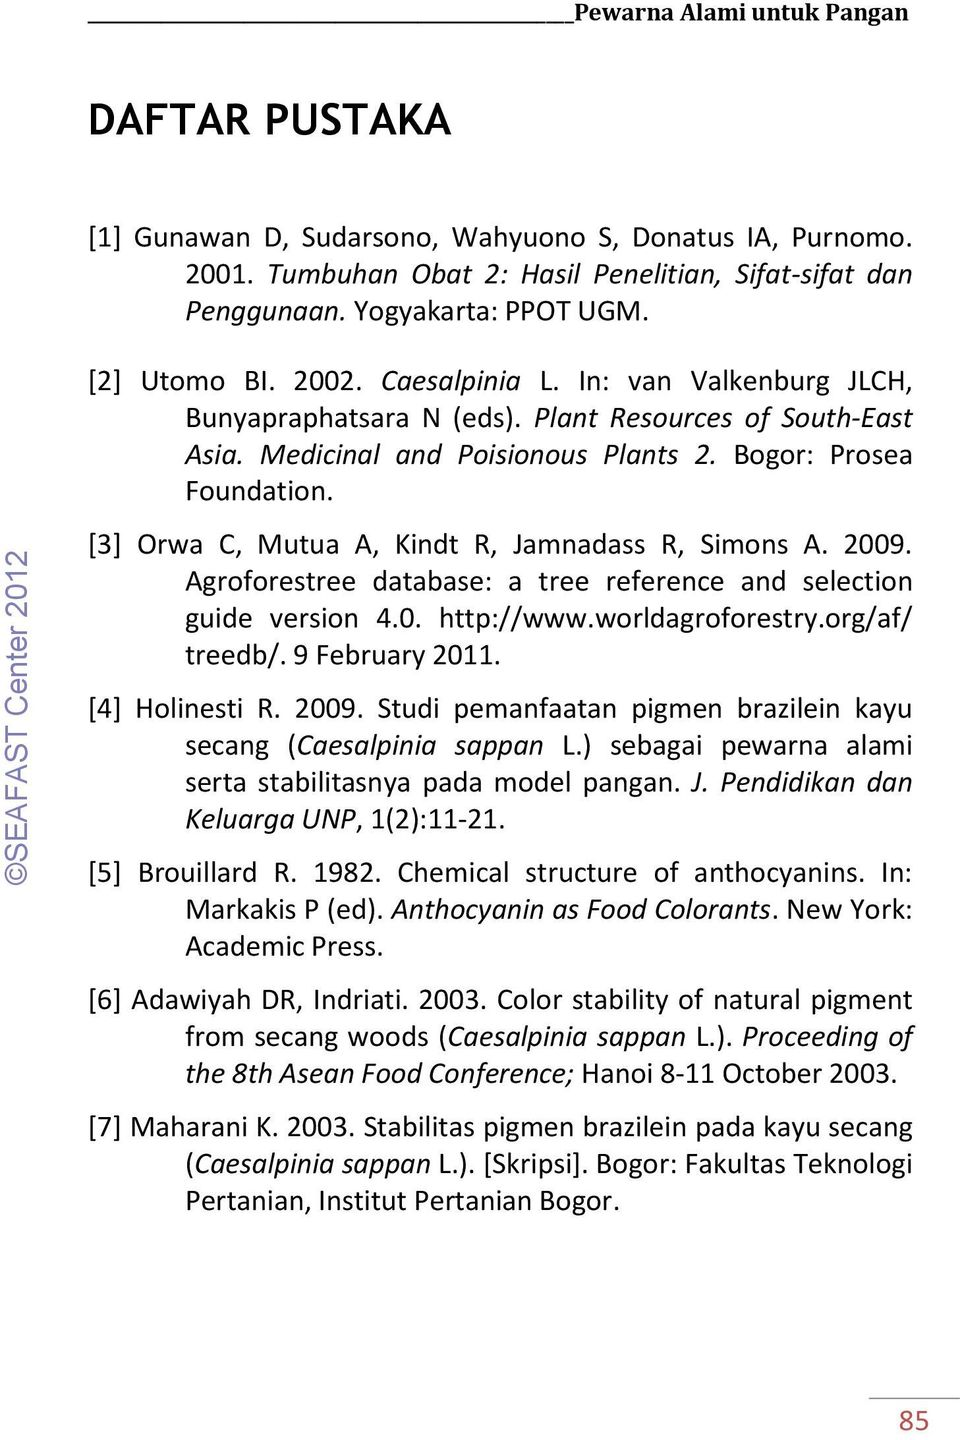 [3] Orwa C, Mutua A, Kindt R, Jamnadass R, Simons A. 2009. Agroforestree database: a tree reference and selection guide version 4.0. http://www.worldagroforestry.org/af/ treedb/. 9 February 2011.